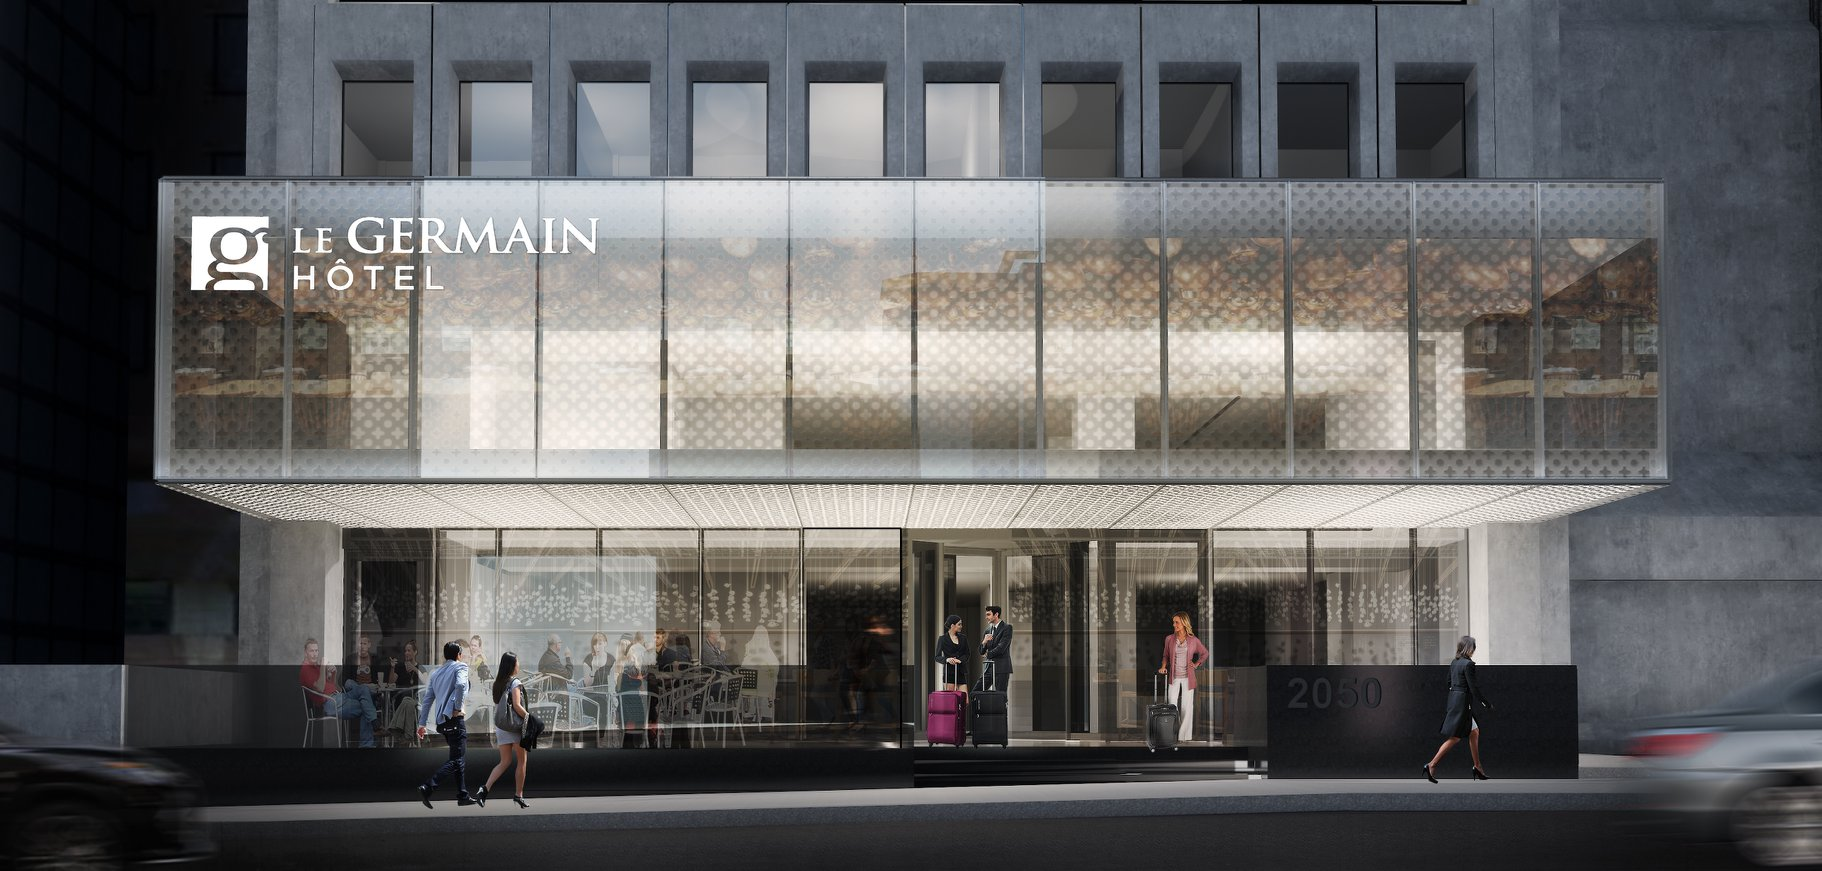 An architectural rendering of the glass exterior of Le Germain.